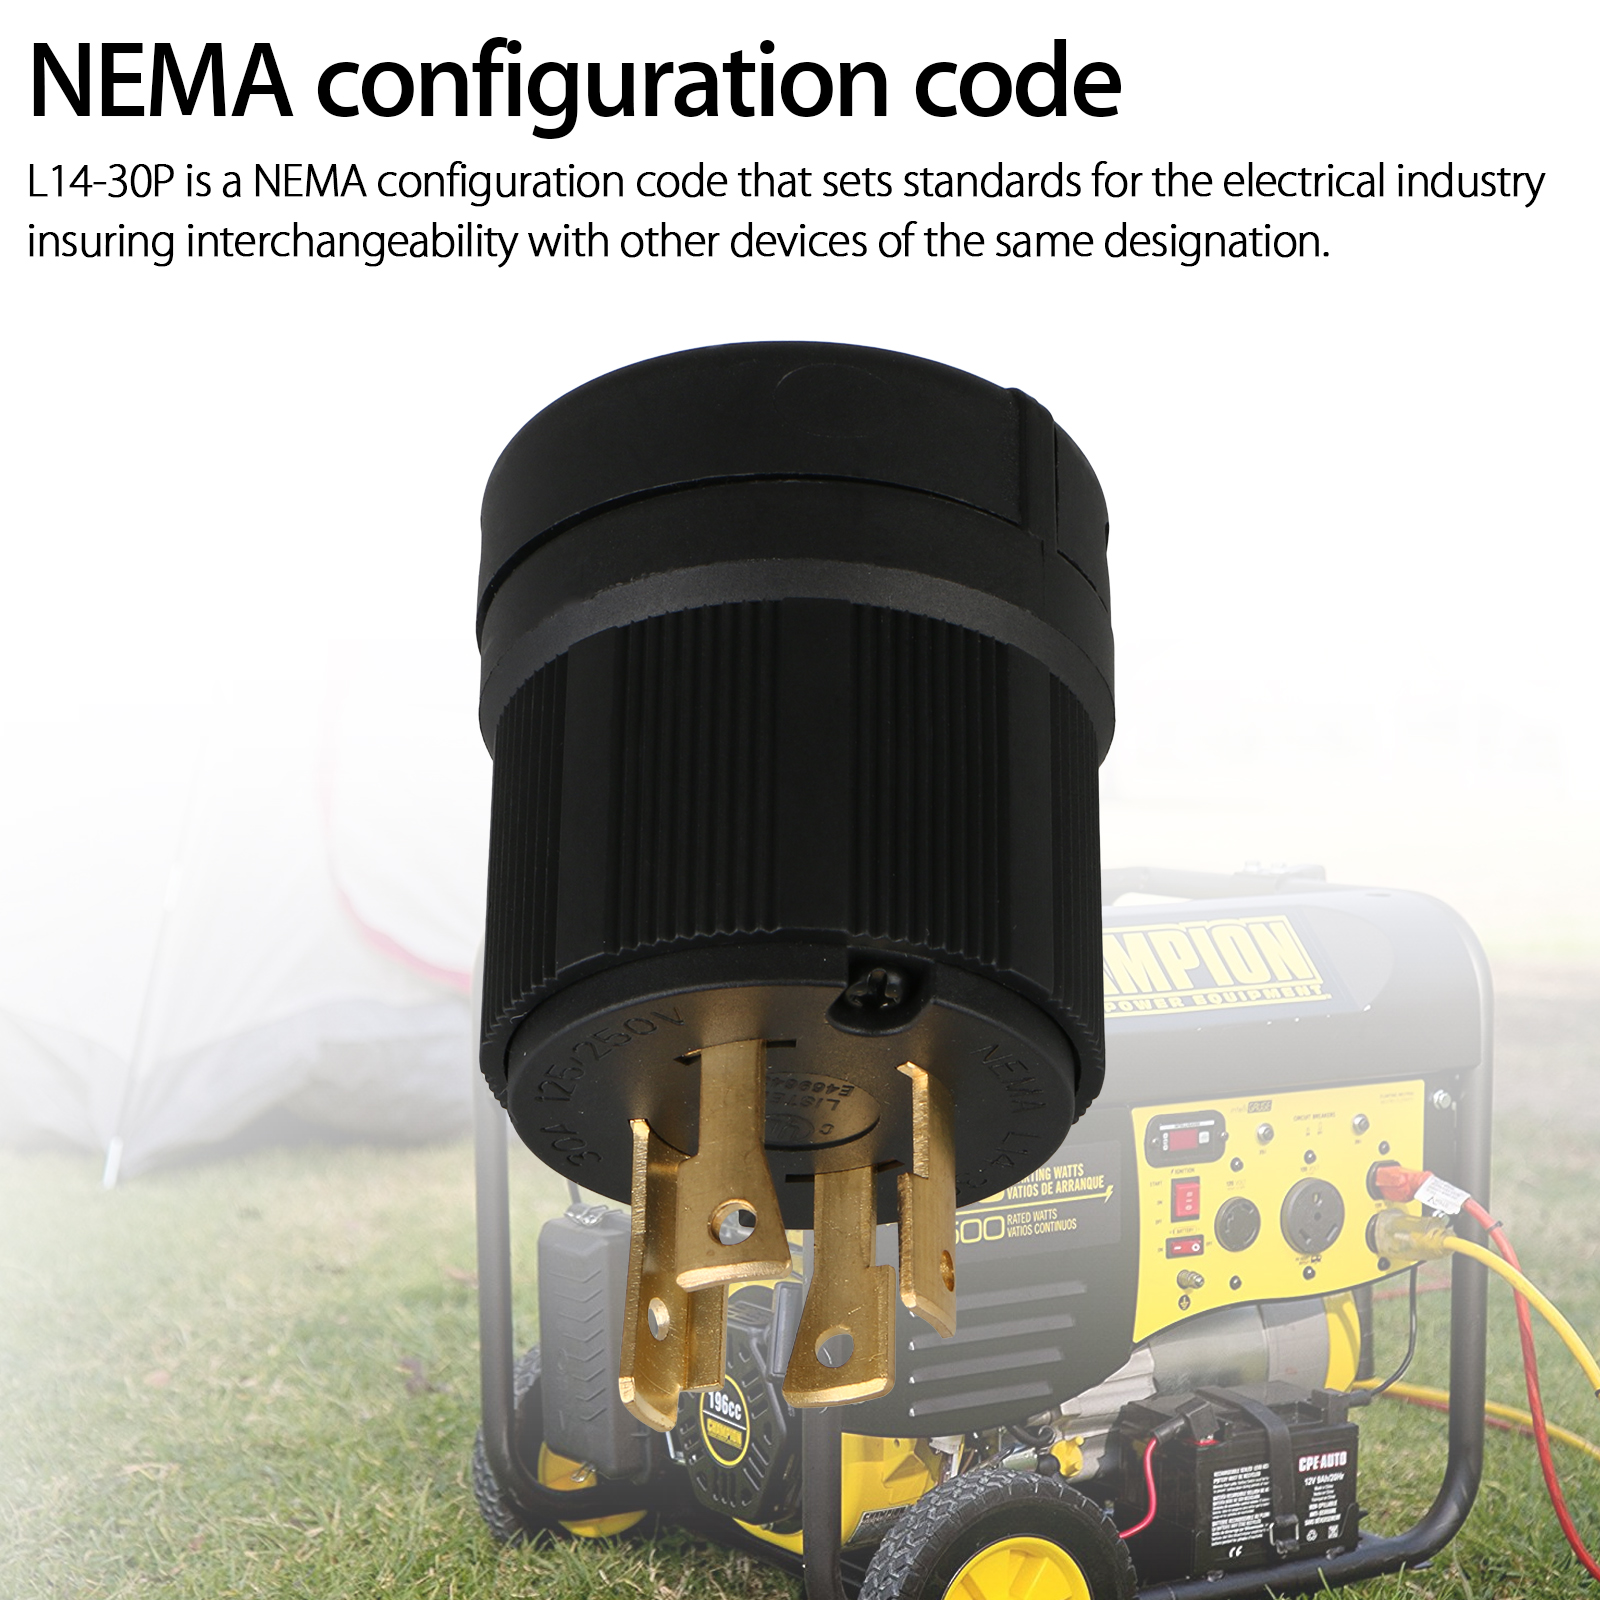 nema l14 30p wiring diagram 2 hot water system thermostat 125v 250v 4 wire twist lock electric male plug connector